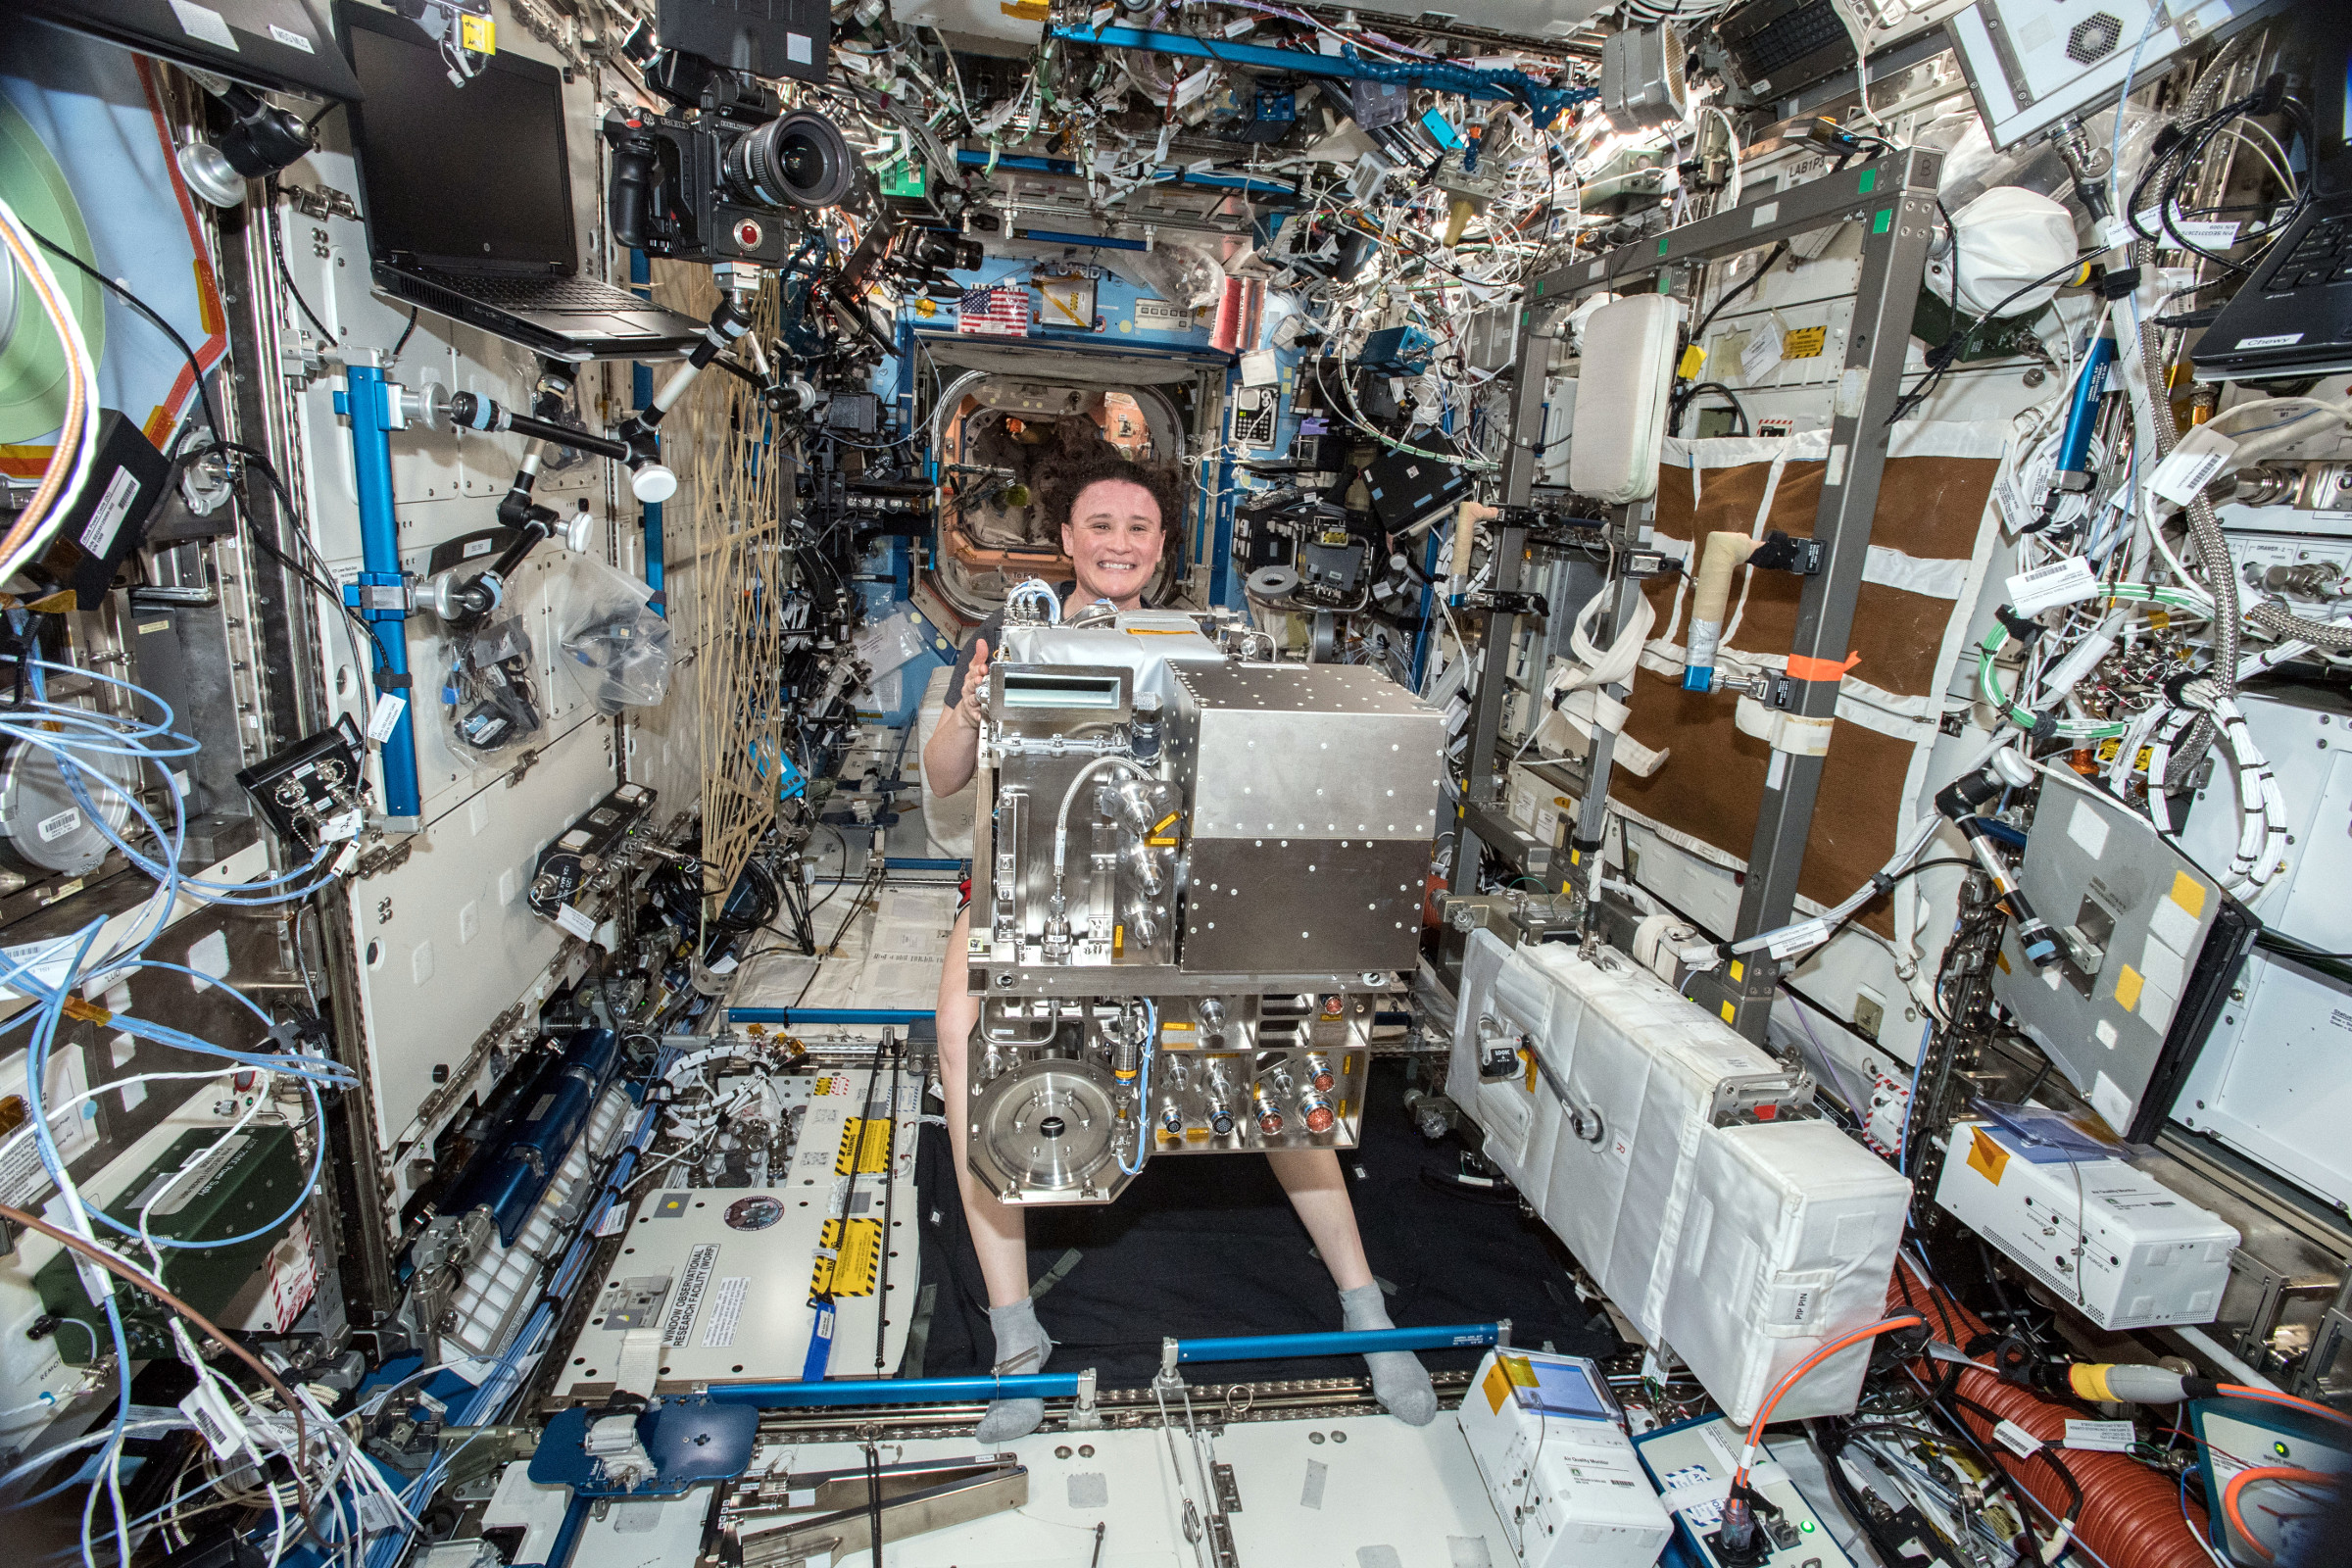 Expedition 57 Flight Engineer Serena Auñón-Chancellor of NASA holds an Air and Water Management Drawer removed from a Life Support Rack inside the U.S. Destiny laboratory during maintenance work aboard the International Space Station.